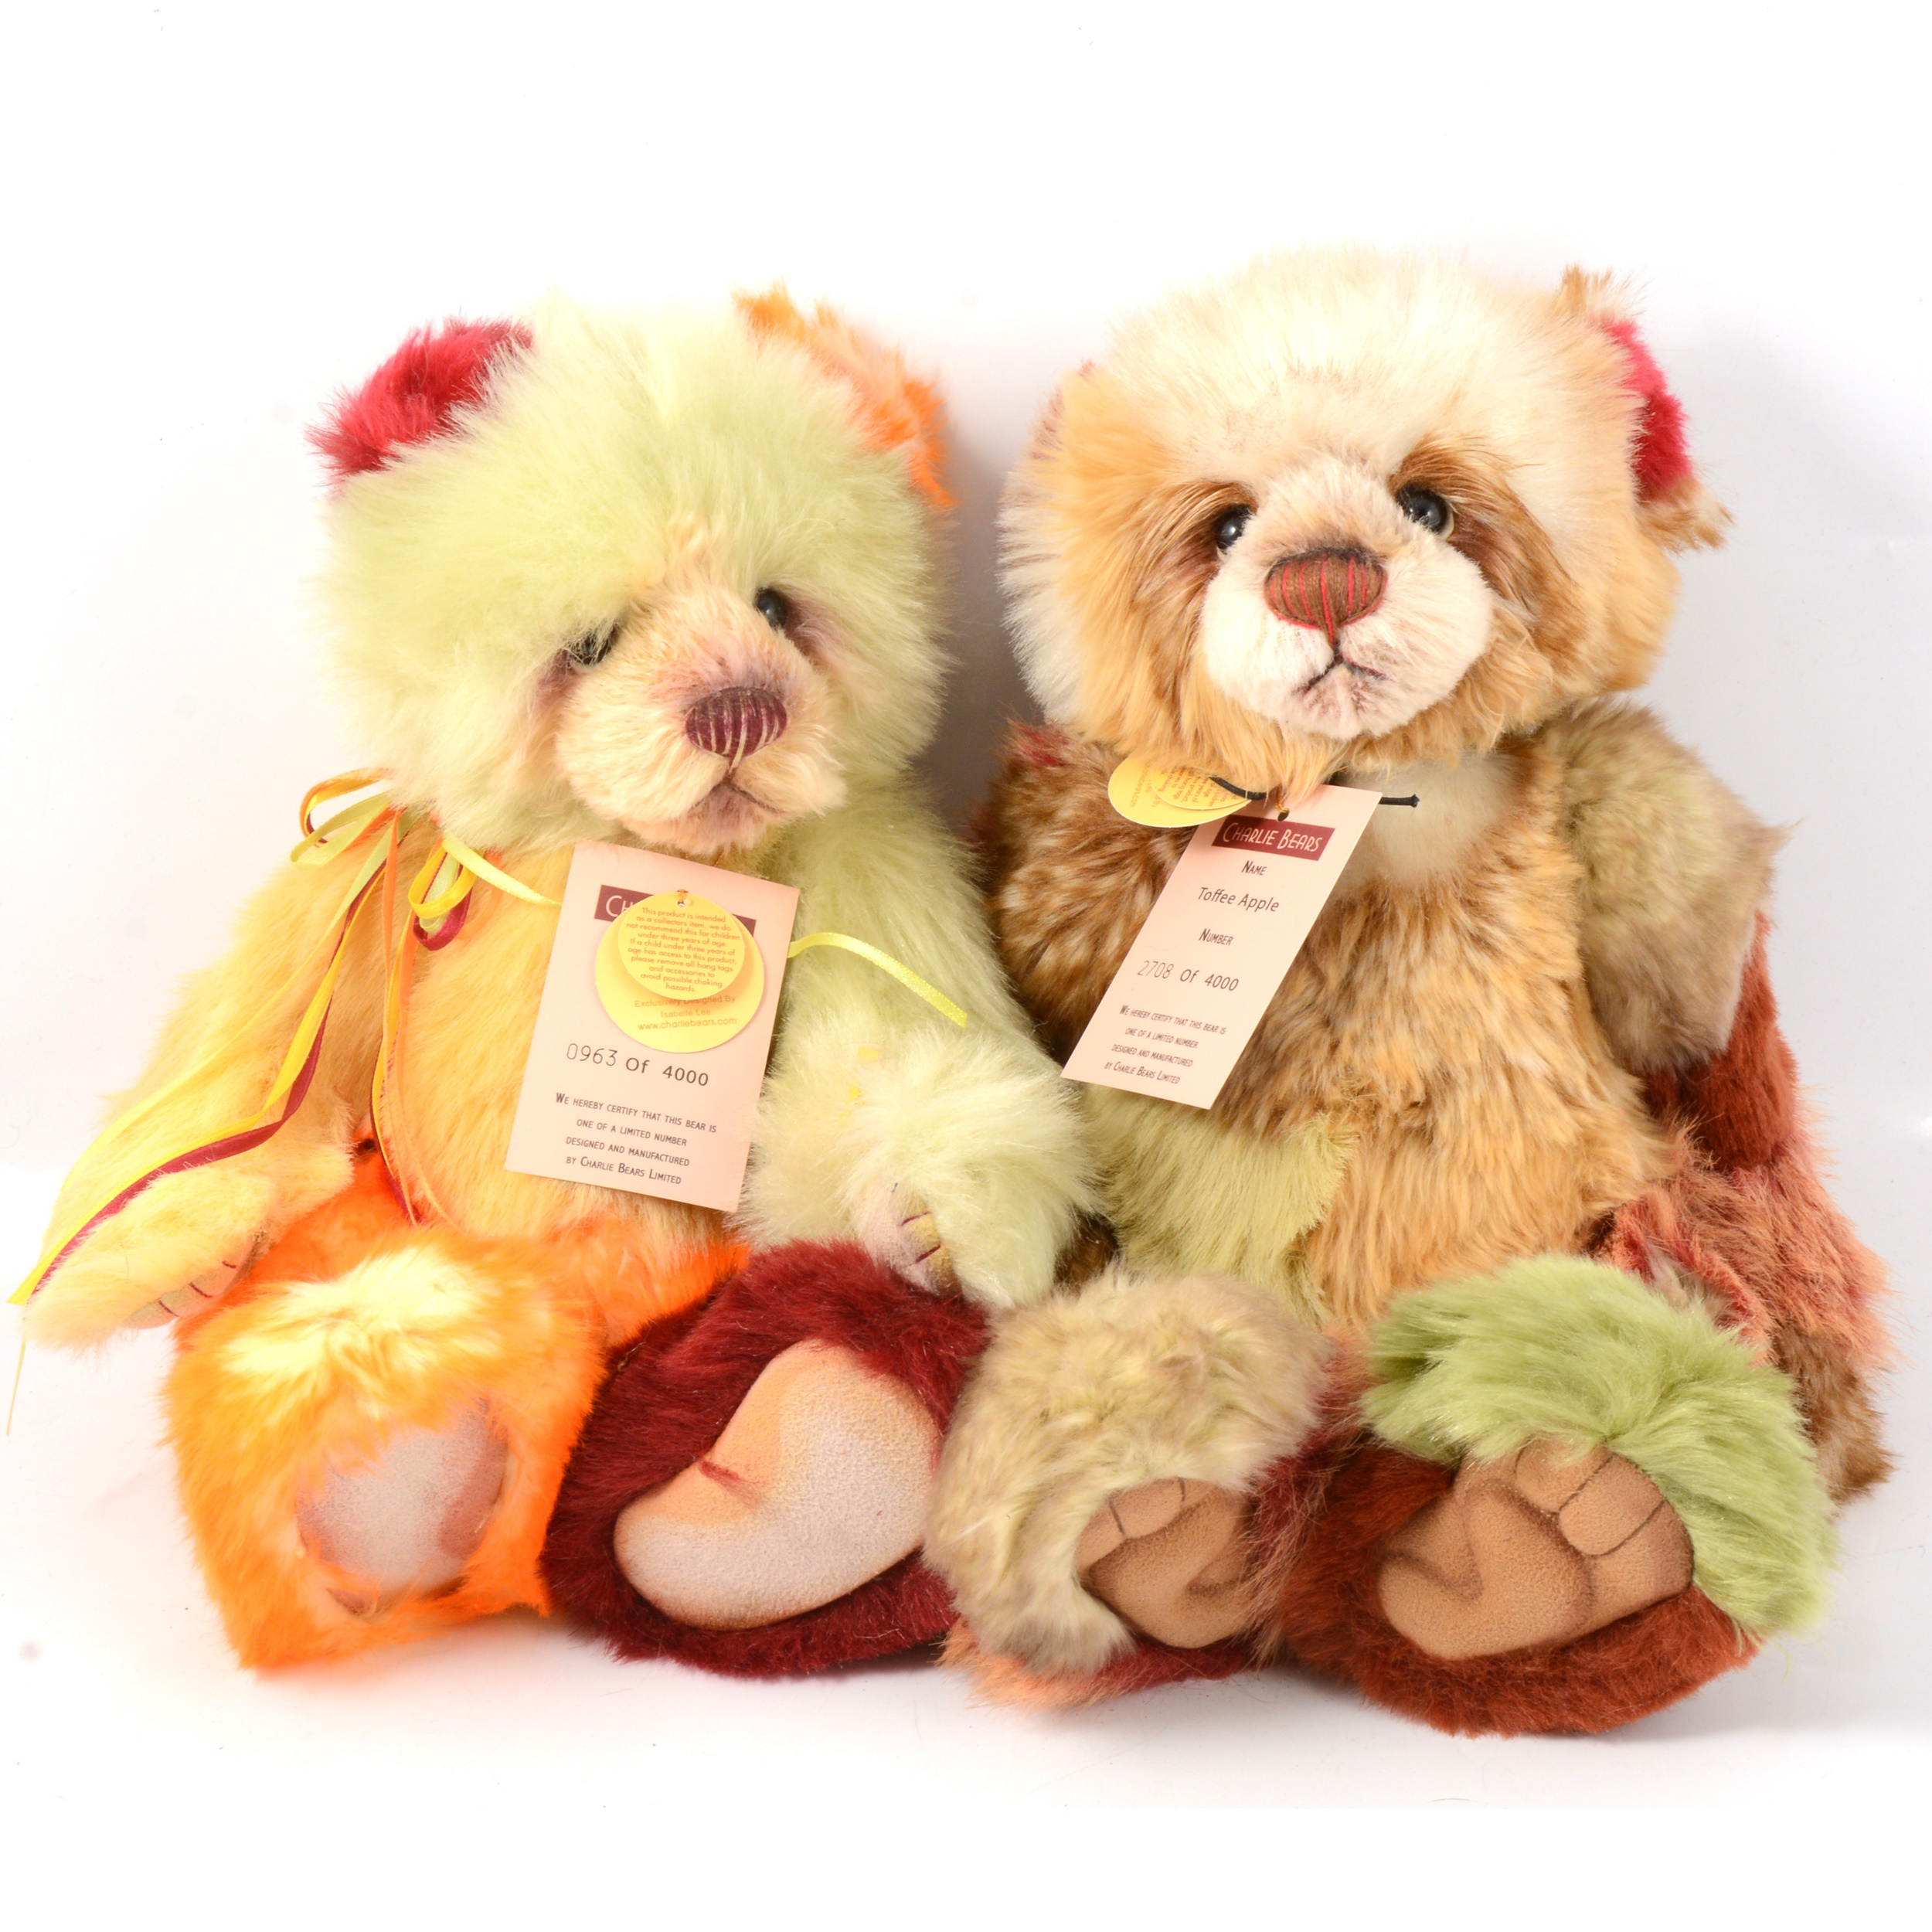 Two Charlie Teddy Bears, Toffee Apple and Ice Lolly.